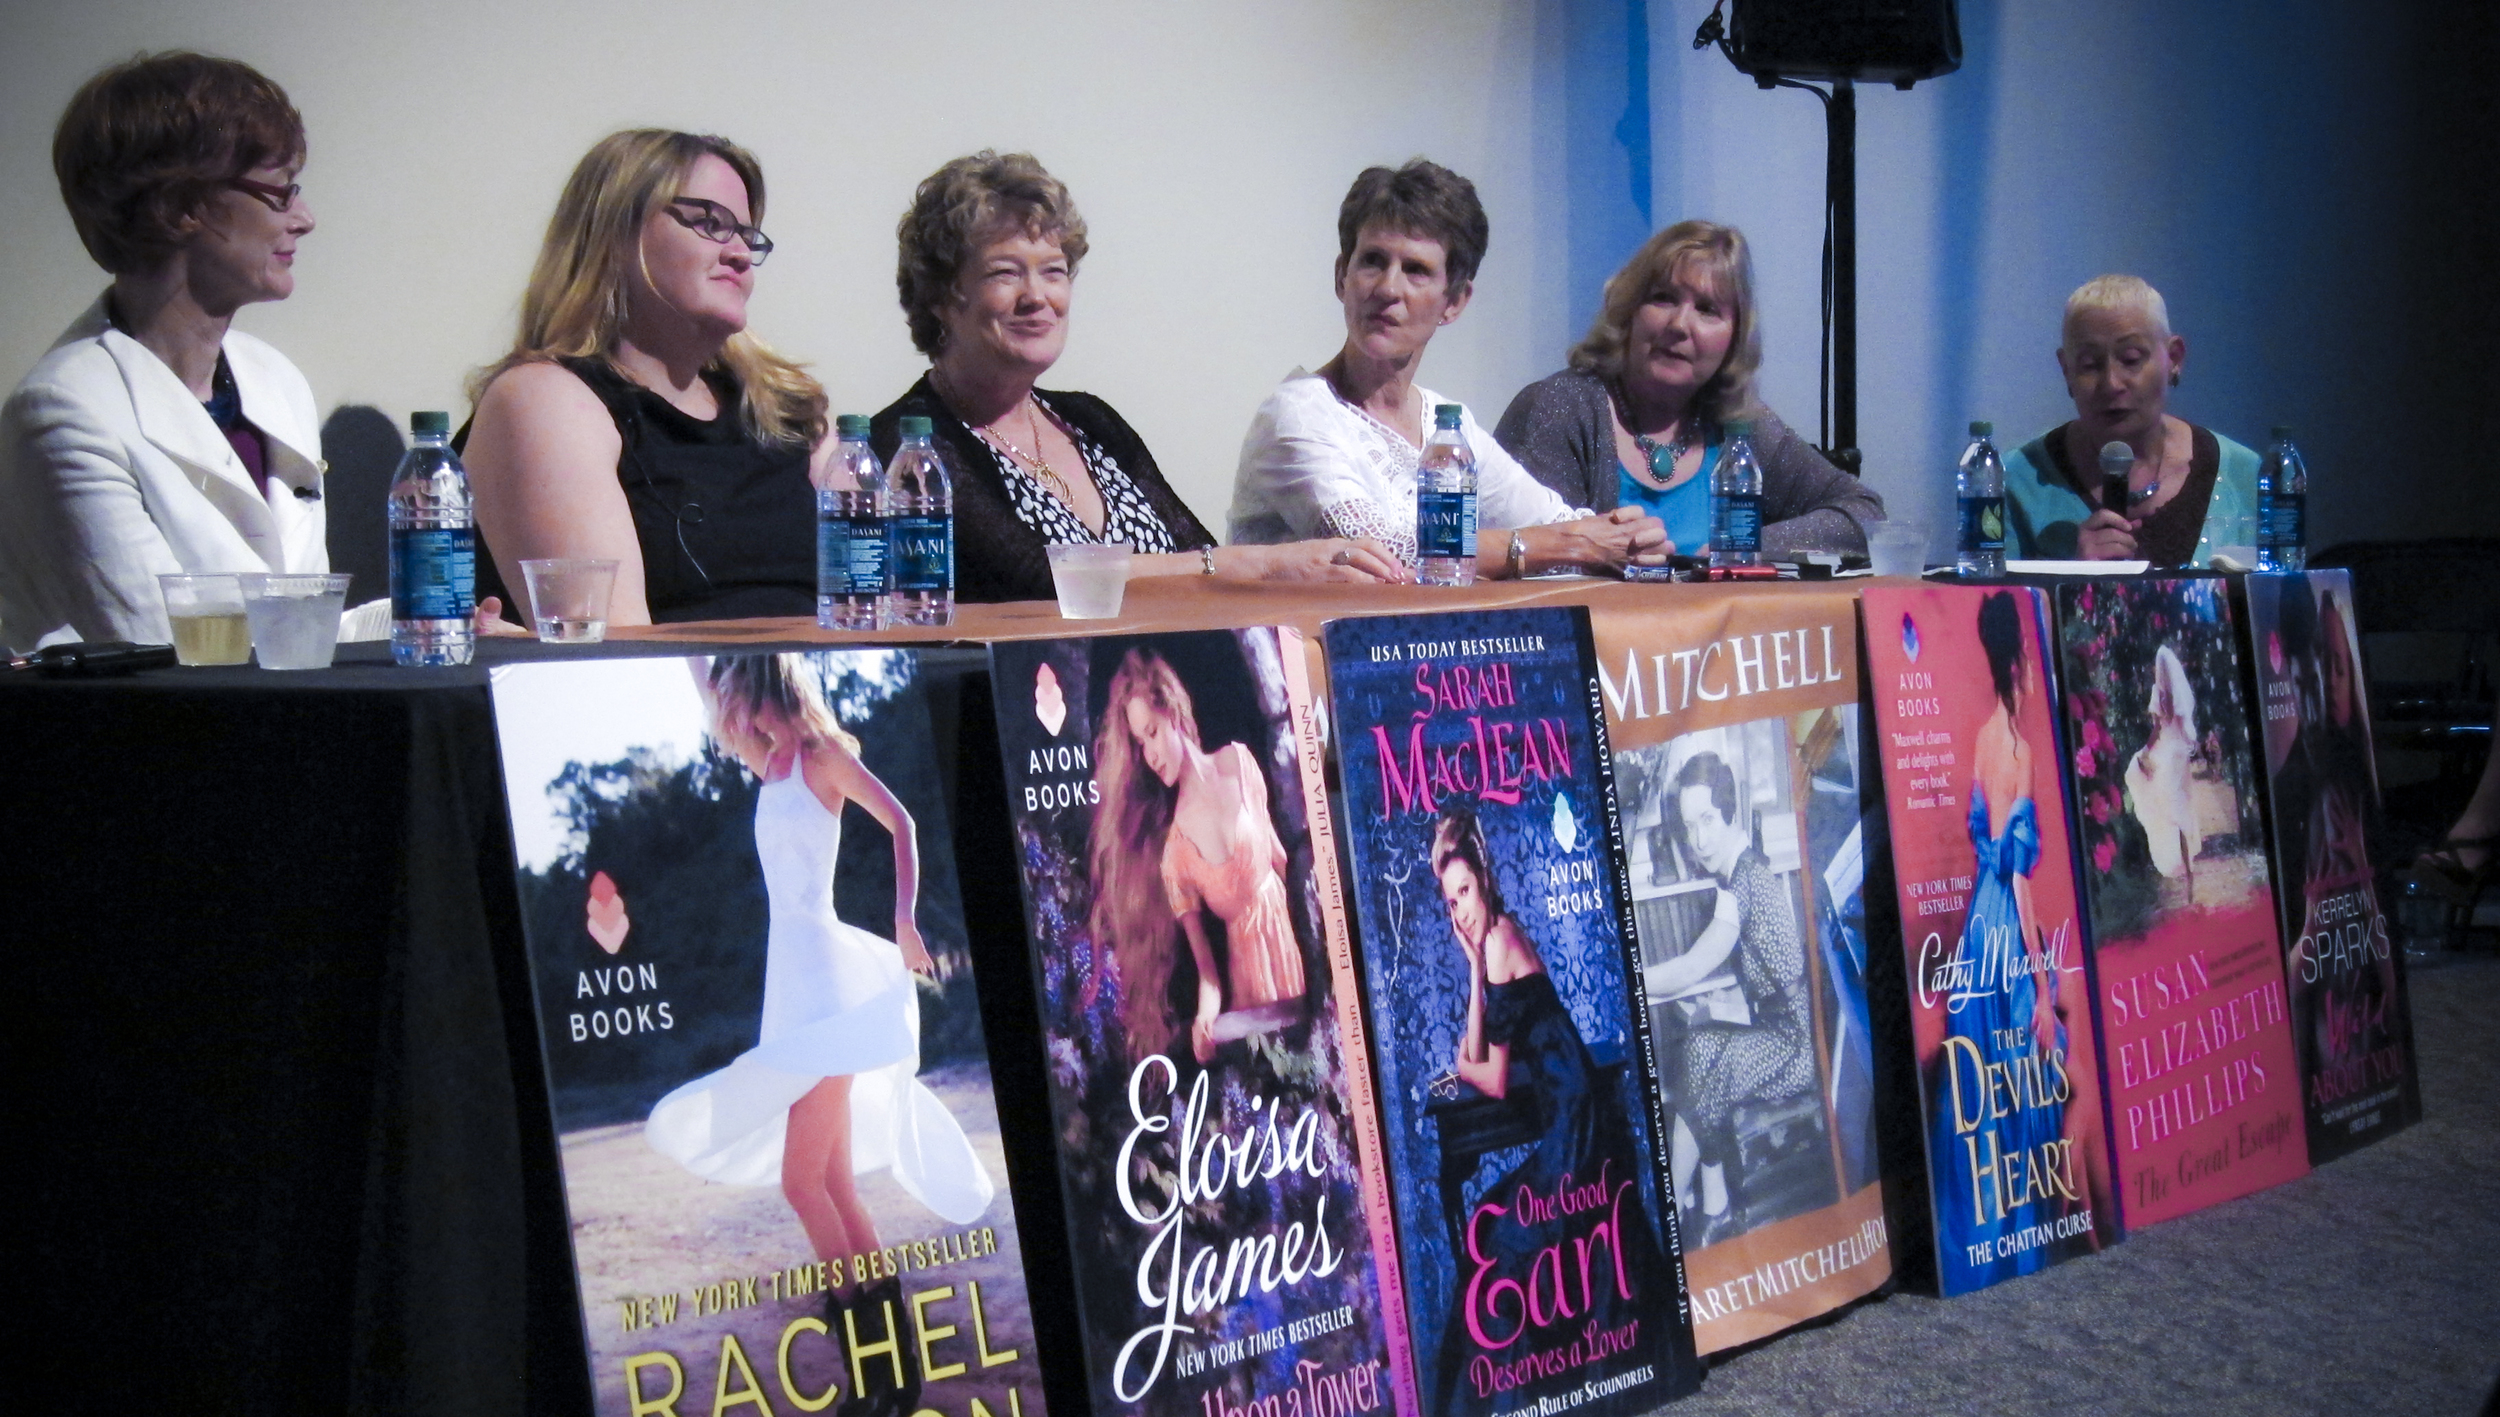 AVON AUTHORS at MMhouse_corrected-cropped.jpg